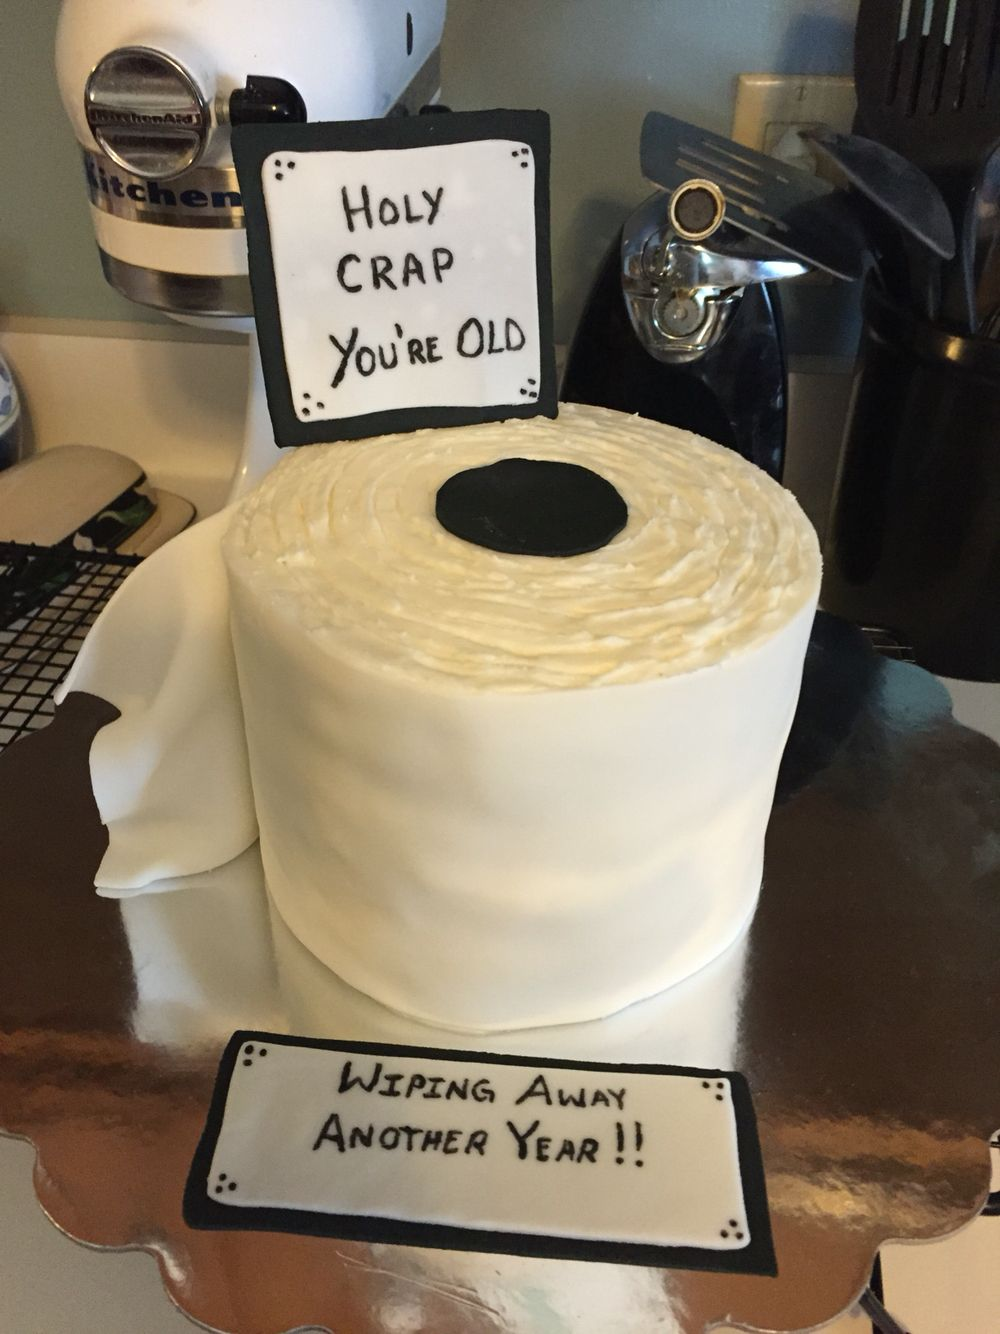 Funny Toilet Cake Images : Toilet paper roll cake for a friend s 40th birthday My ...